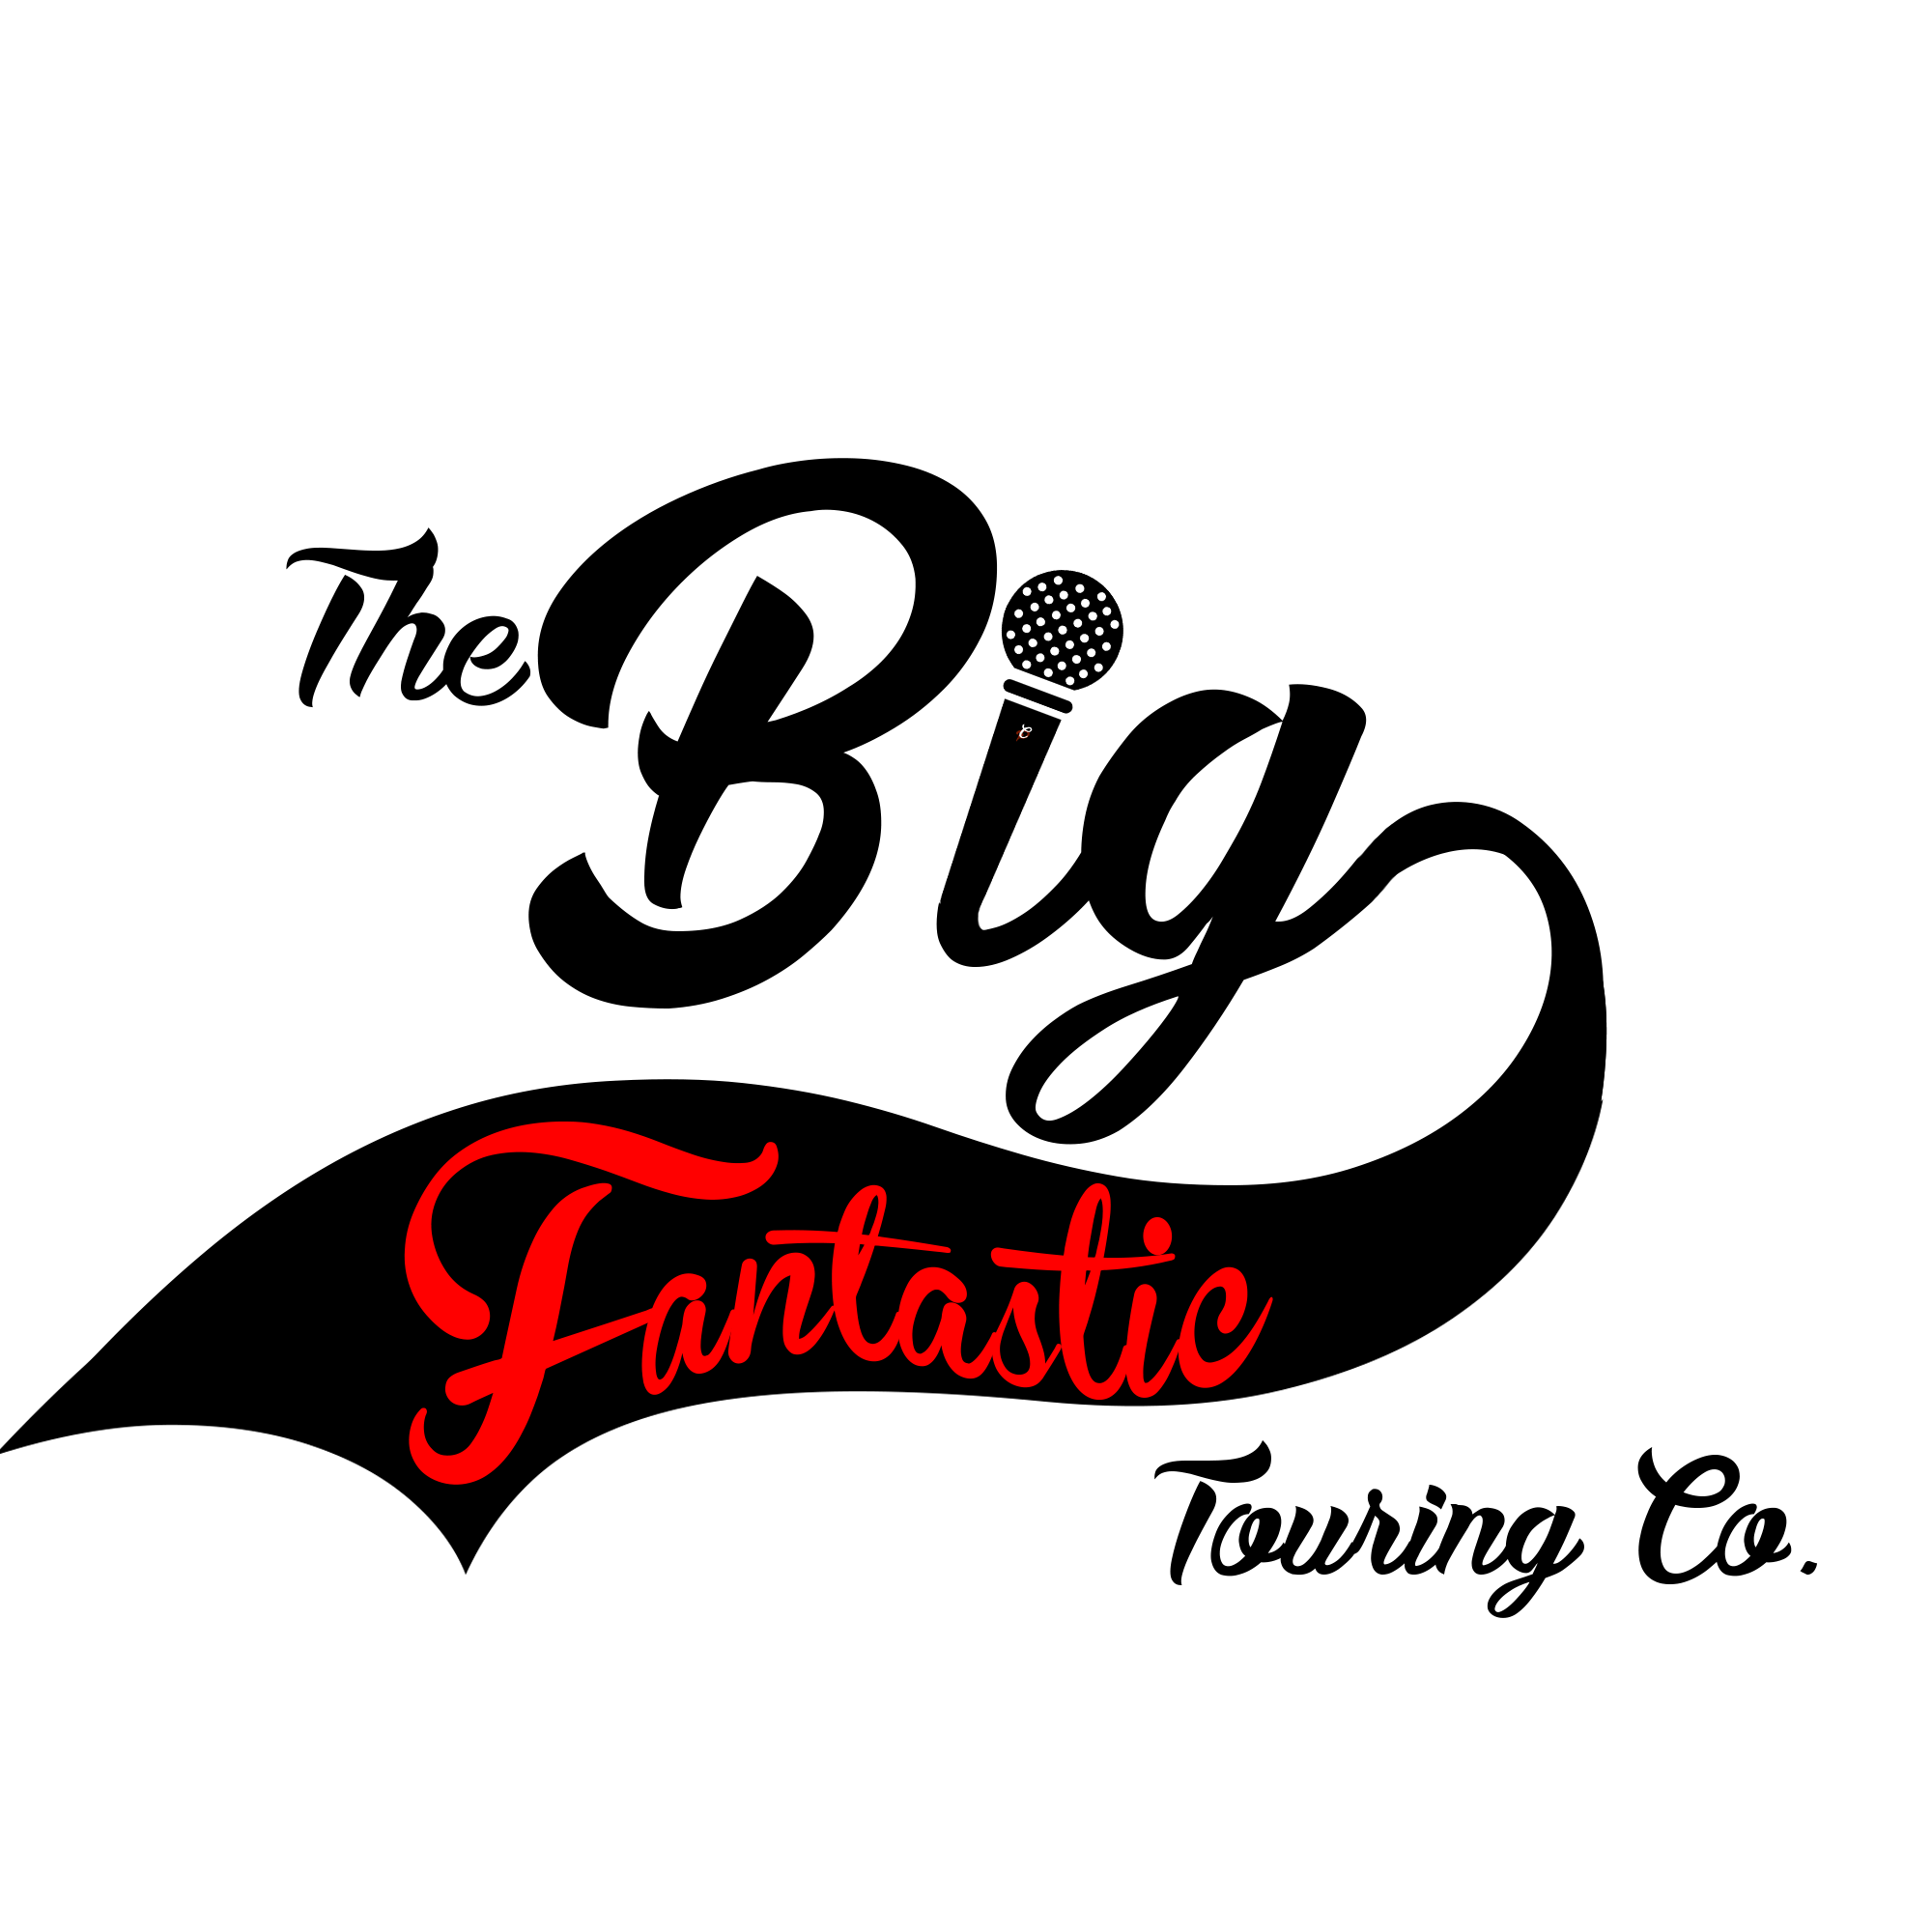 The Big Fantastic